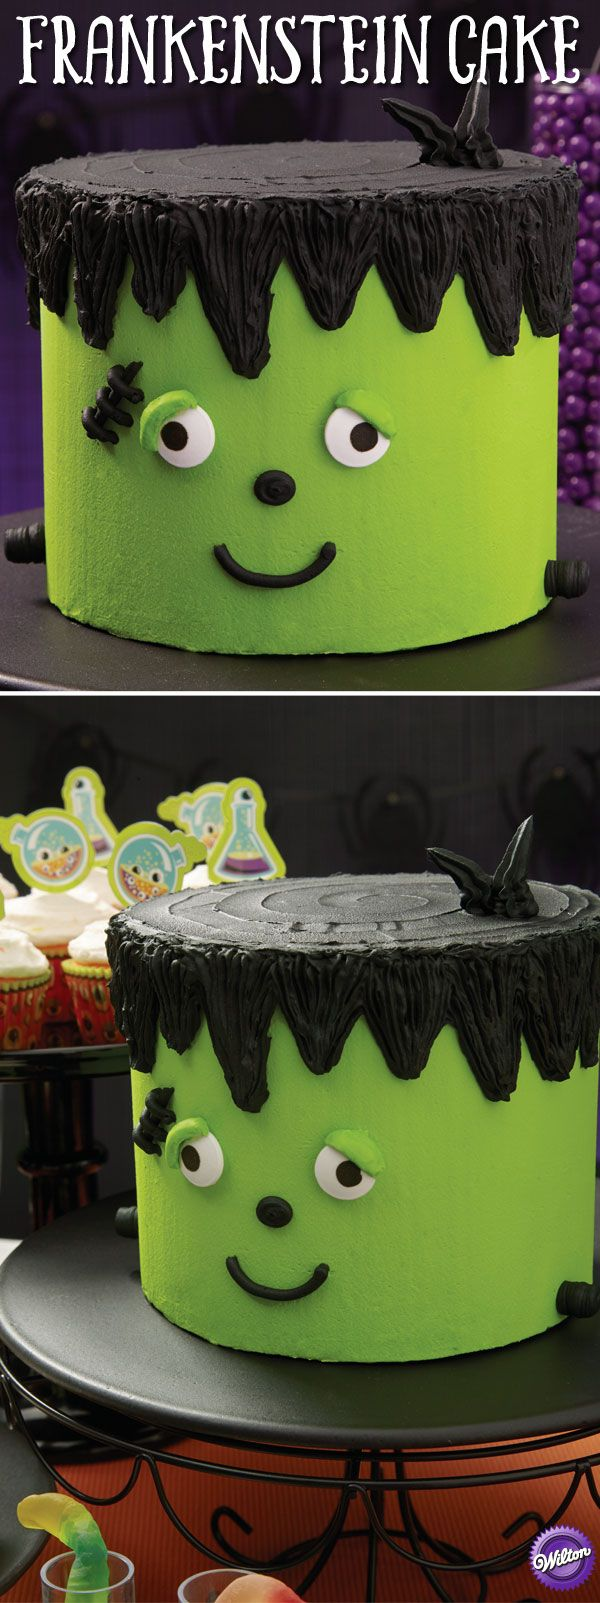 Fondant Cake Halloween Ideas : 25+ best ideas about Halloween fondant cake on Pinterest ...